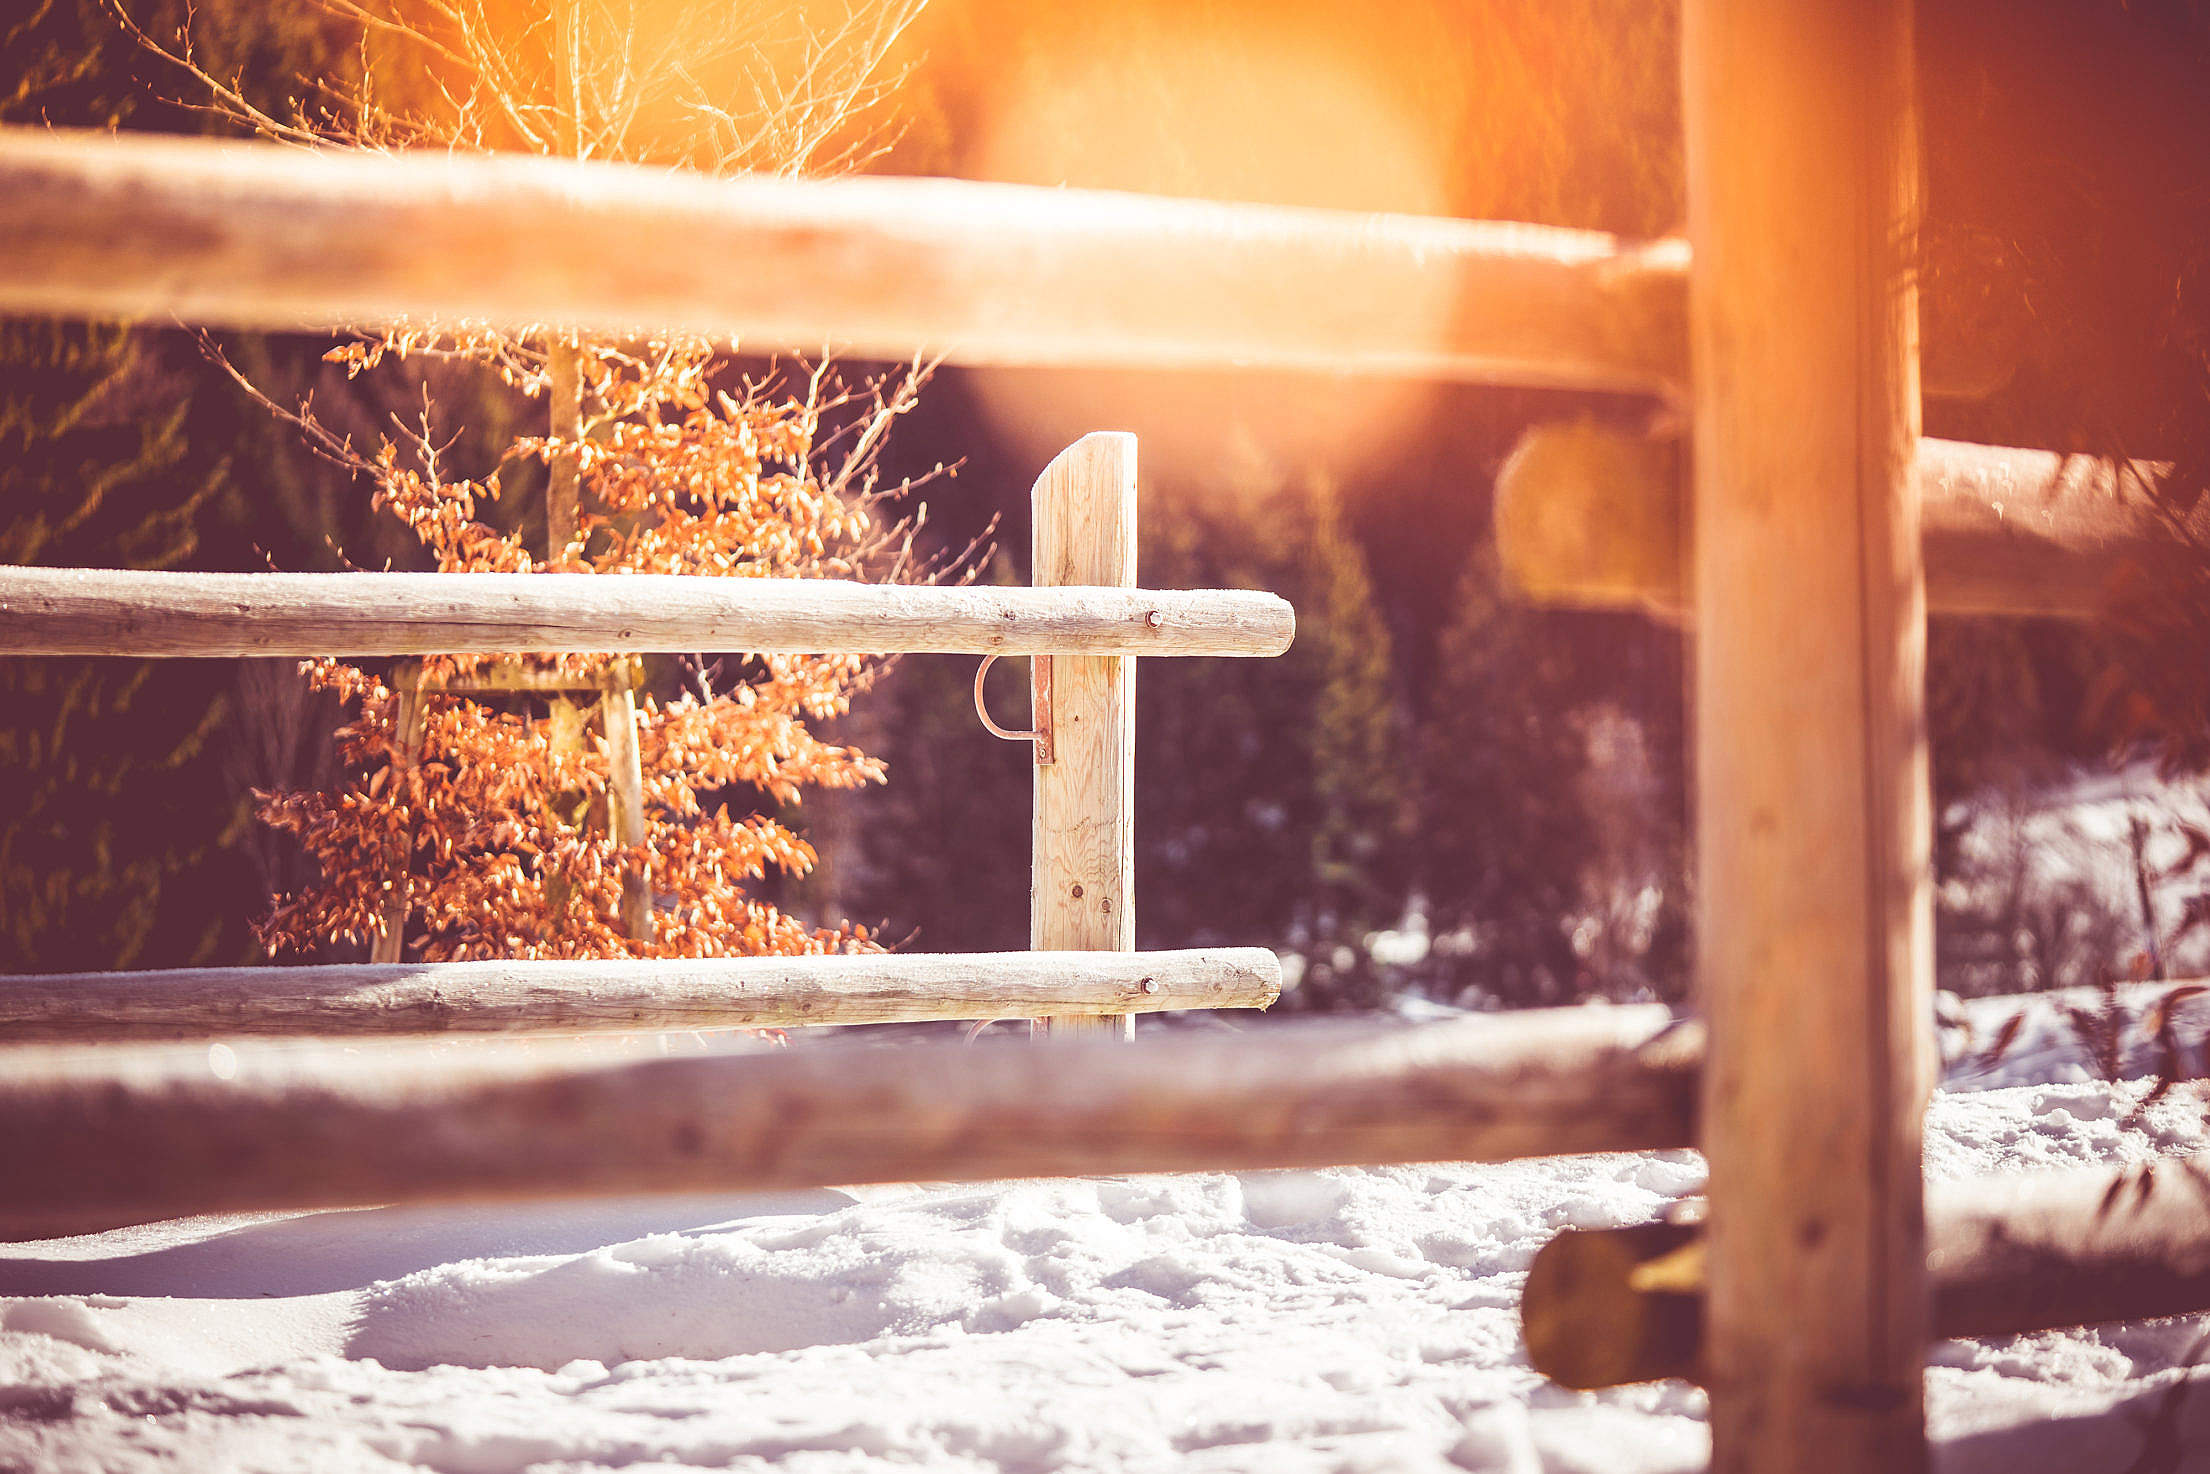 Wooden Fence on Mountain Path in Winter Free Stock Photo